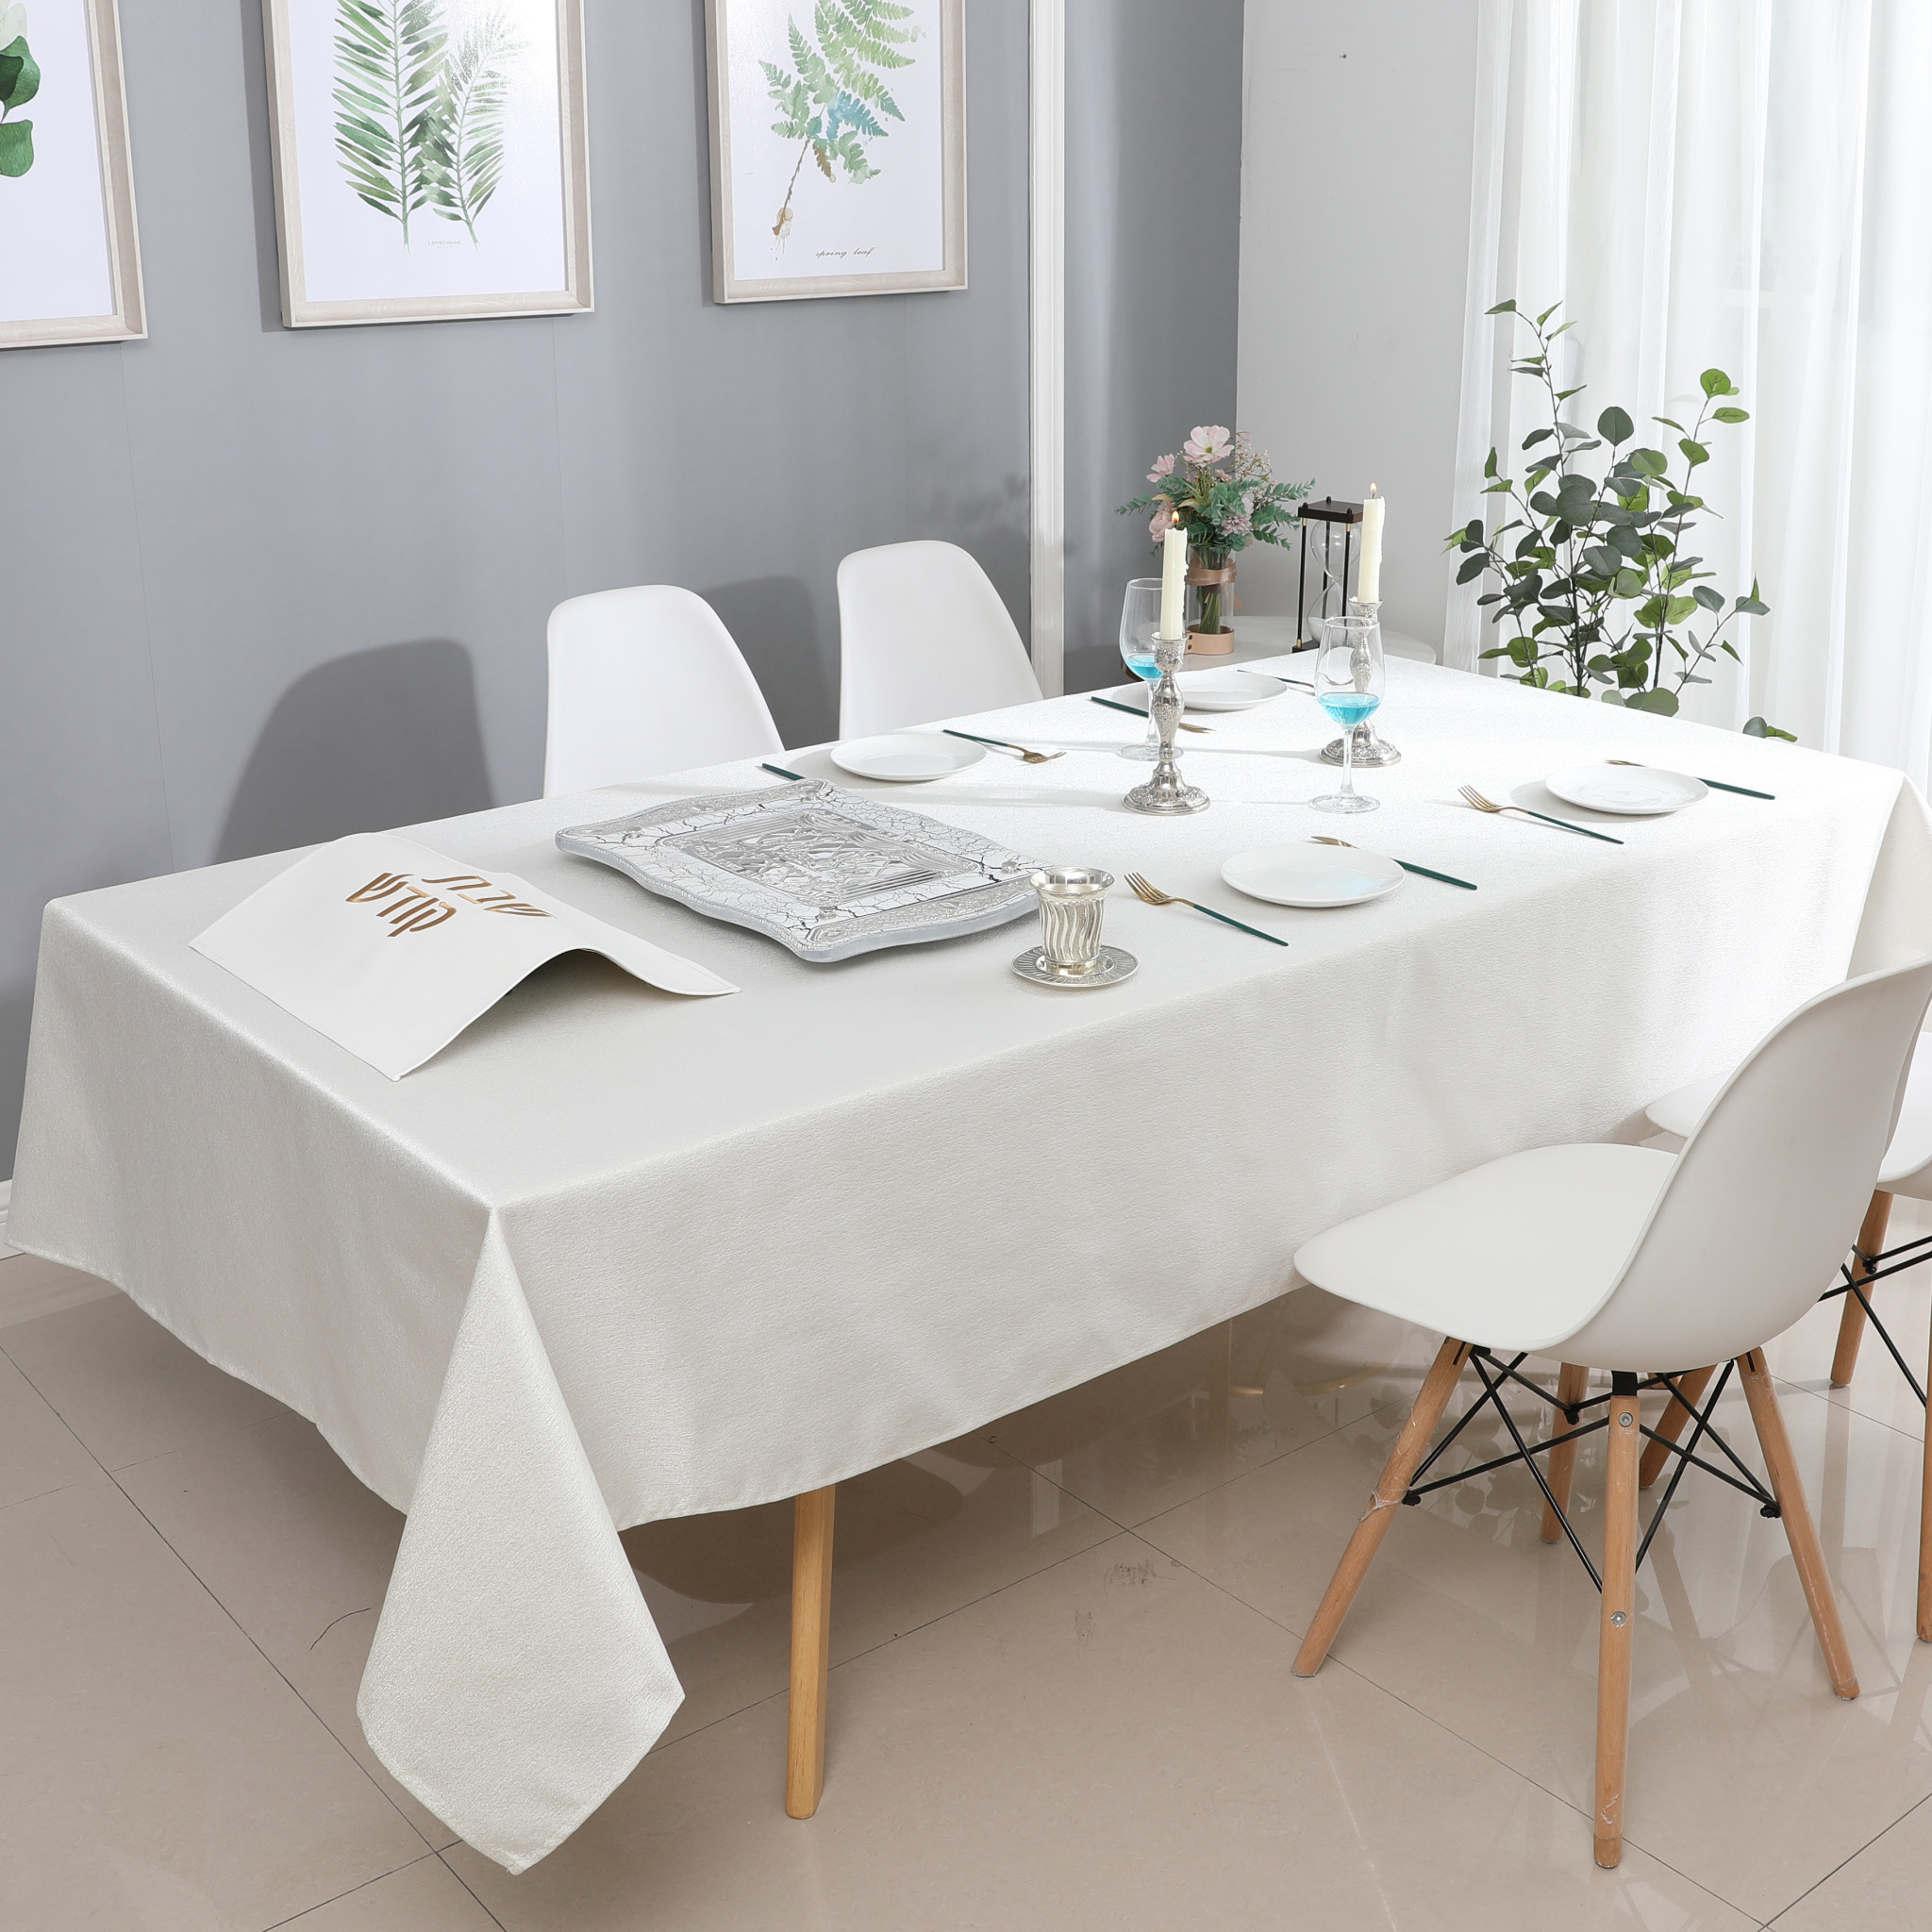 TC1326- 70 x 144 Jacquard White Silver Tablecloth